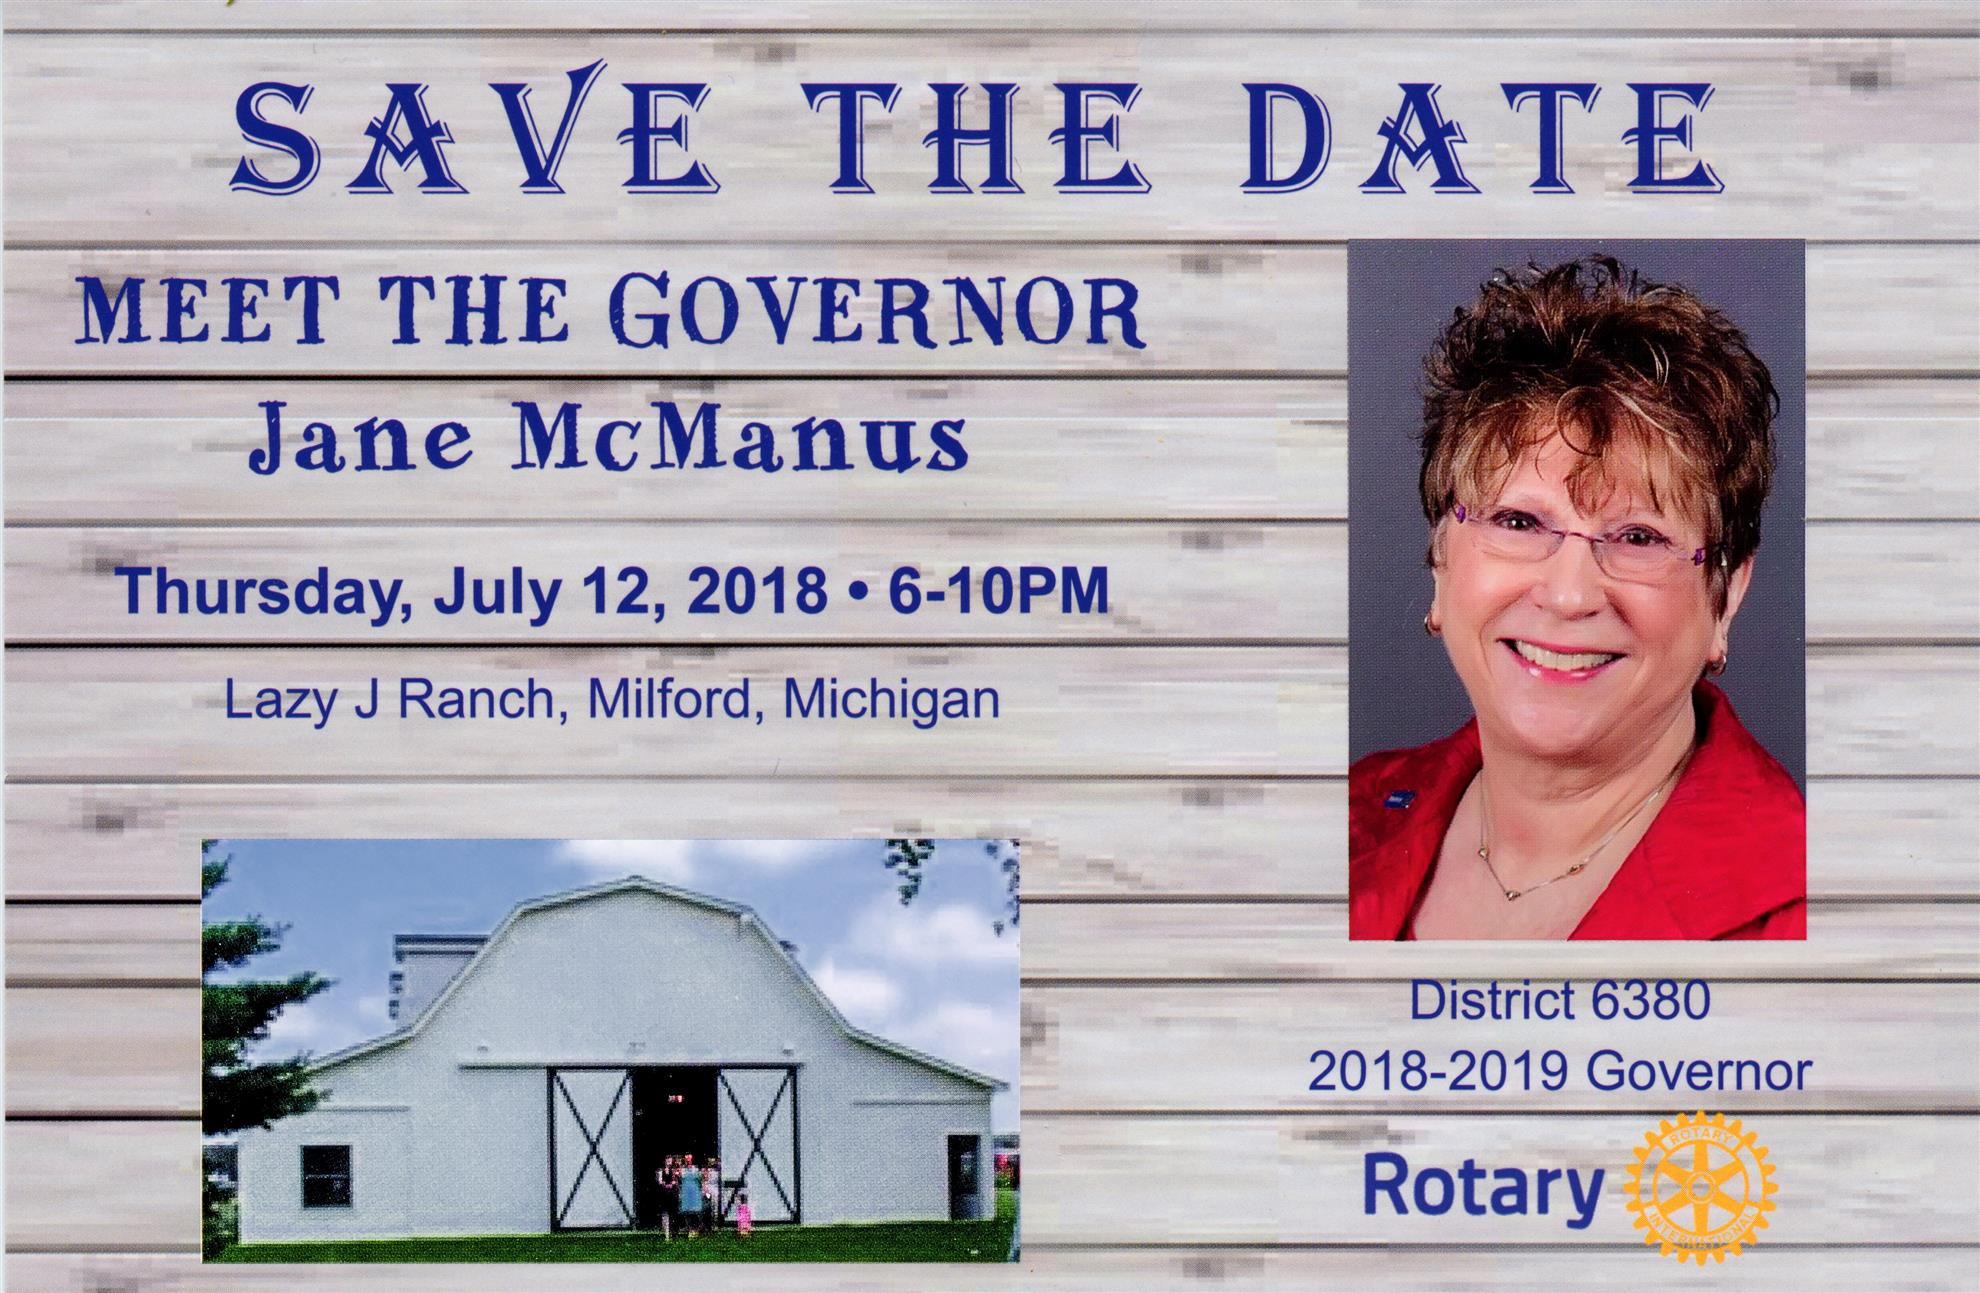 Meet The Governor - Thursday July 12, 2018